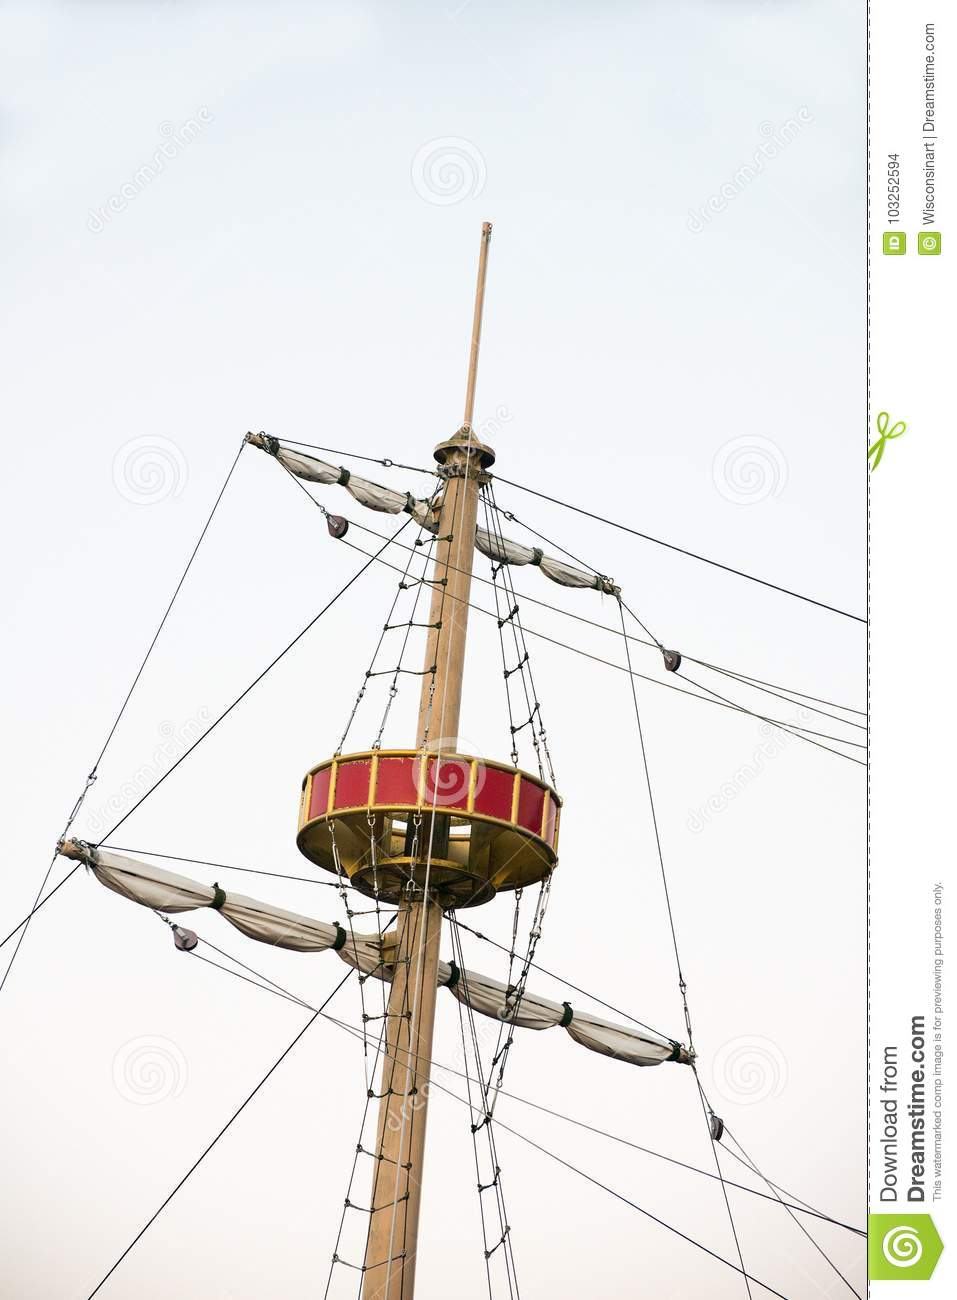 Crow, Crows Nest, Pirate Ship